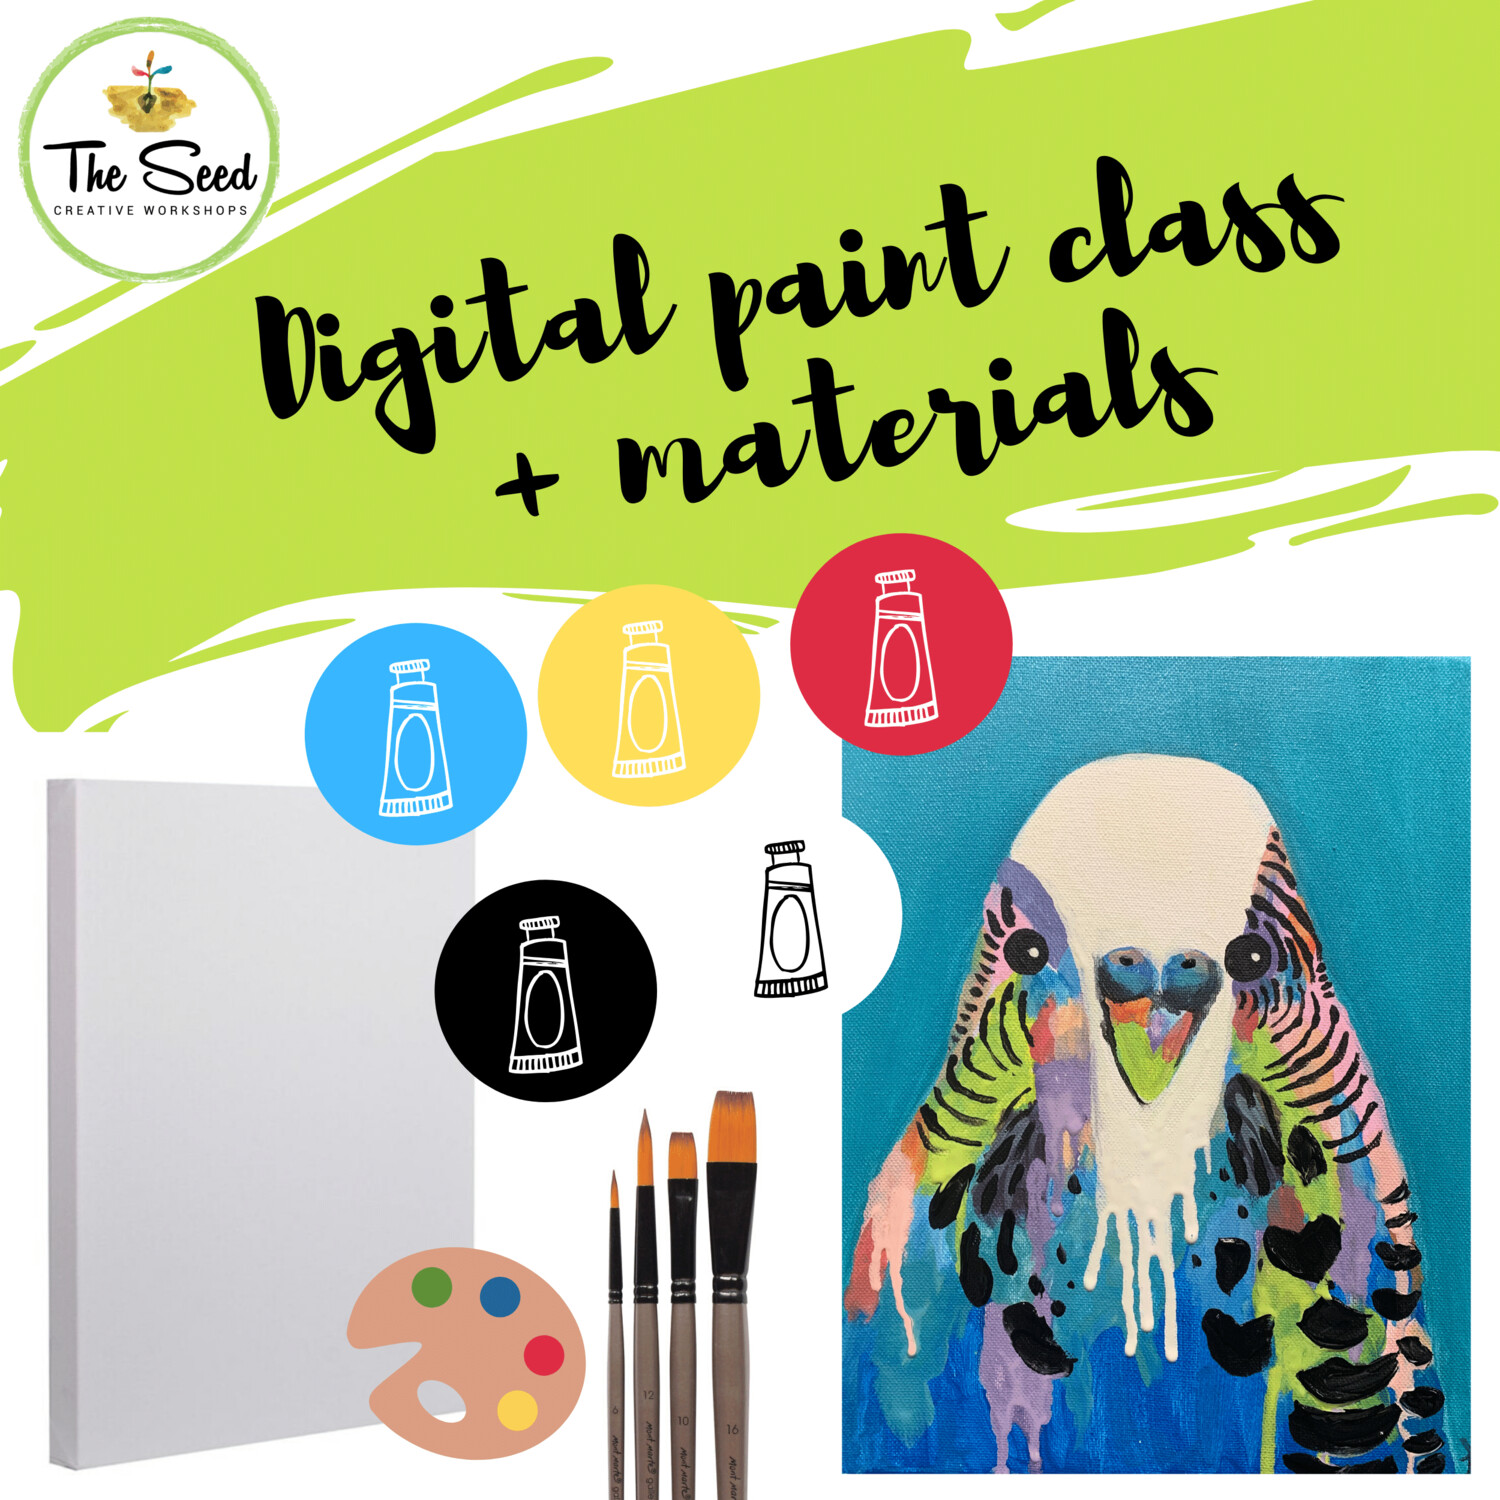 Budgie Digital painting class + materials